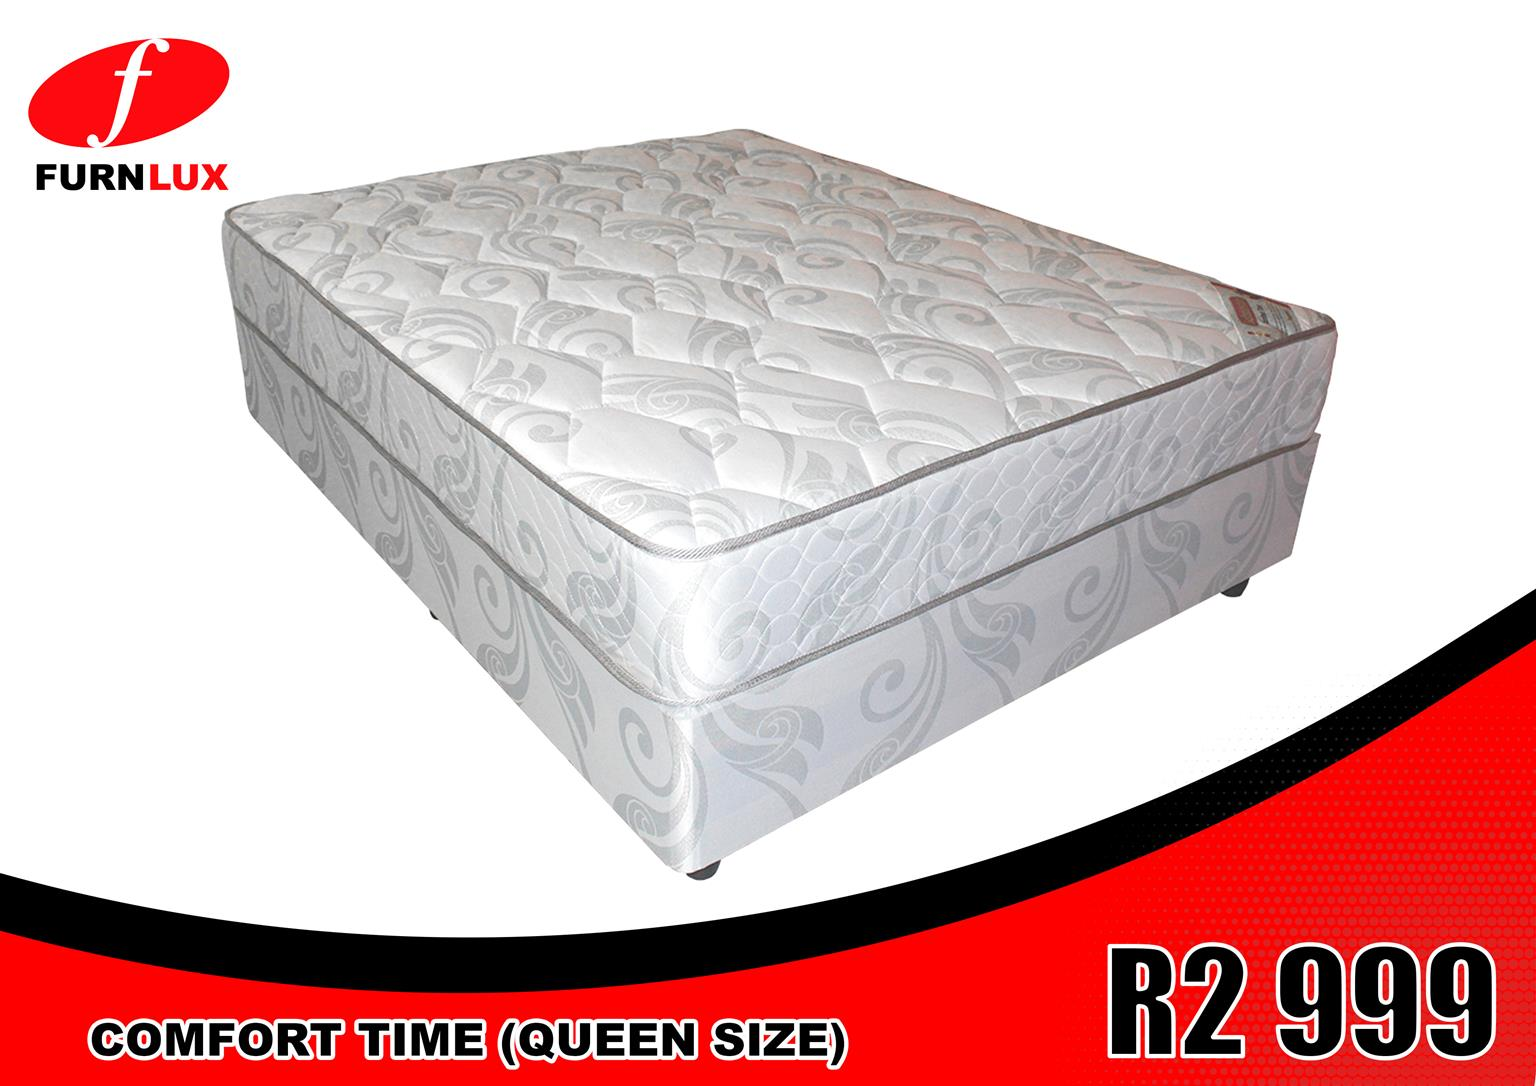 MATTRESS AND BASE BRAND NEW COMFORT TIME